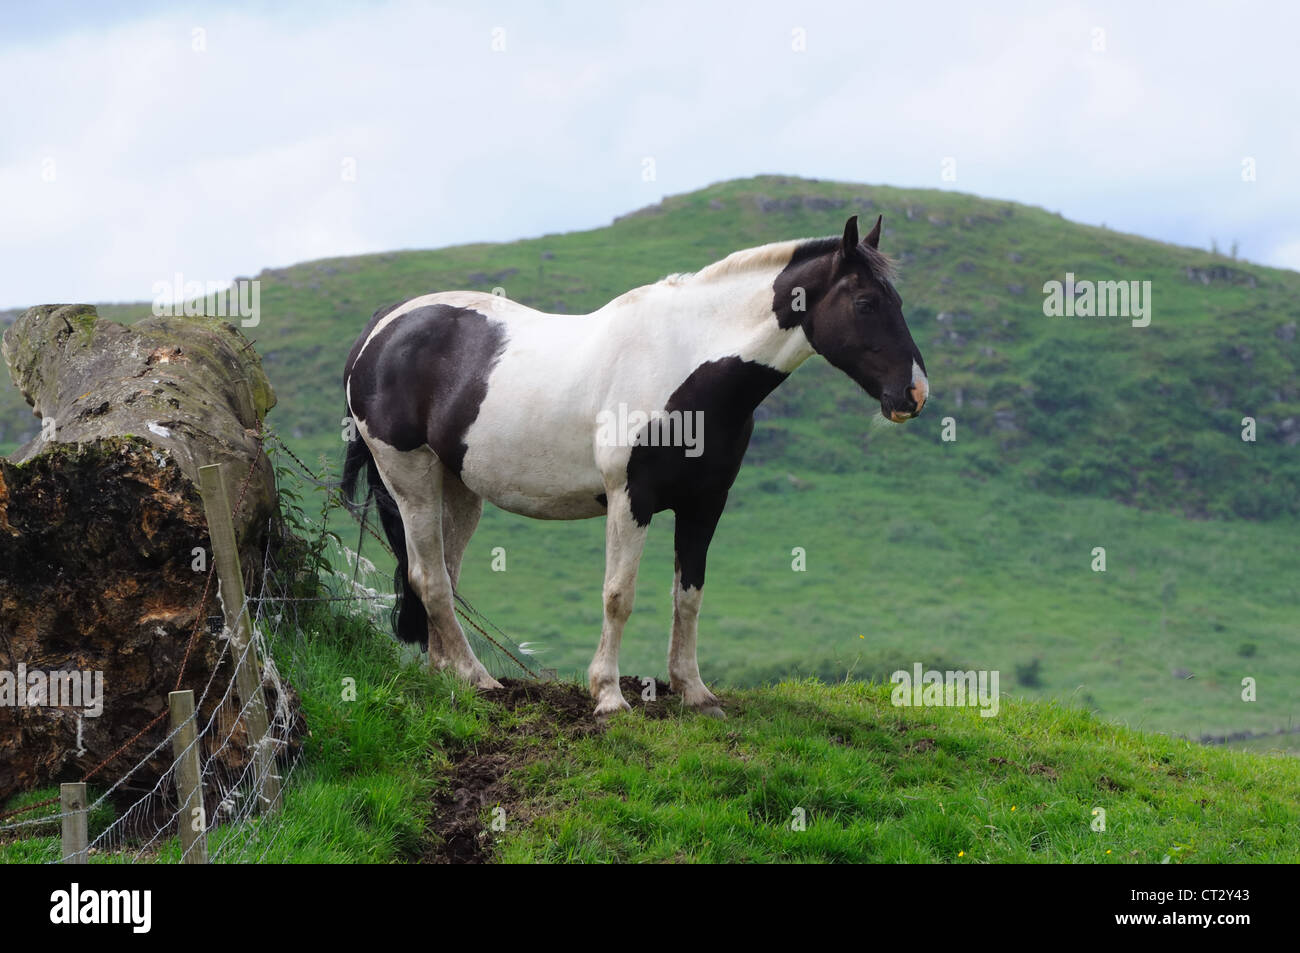 Black and white horse in a field in Scotland. - Stock Image